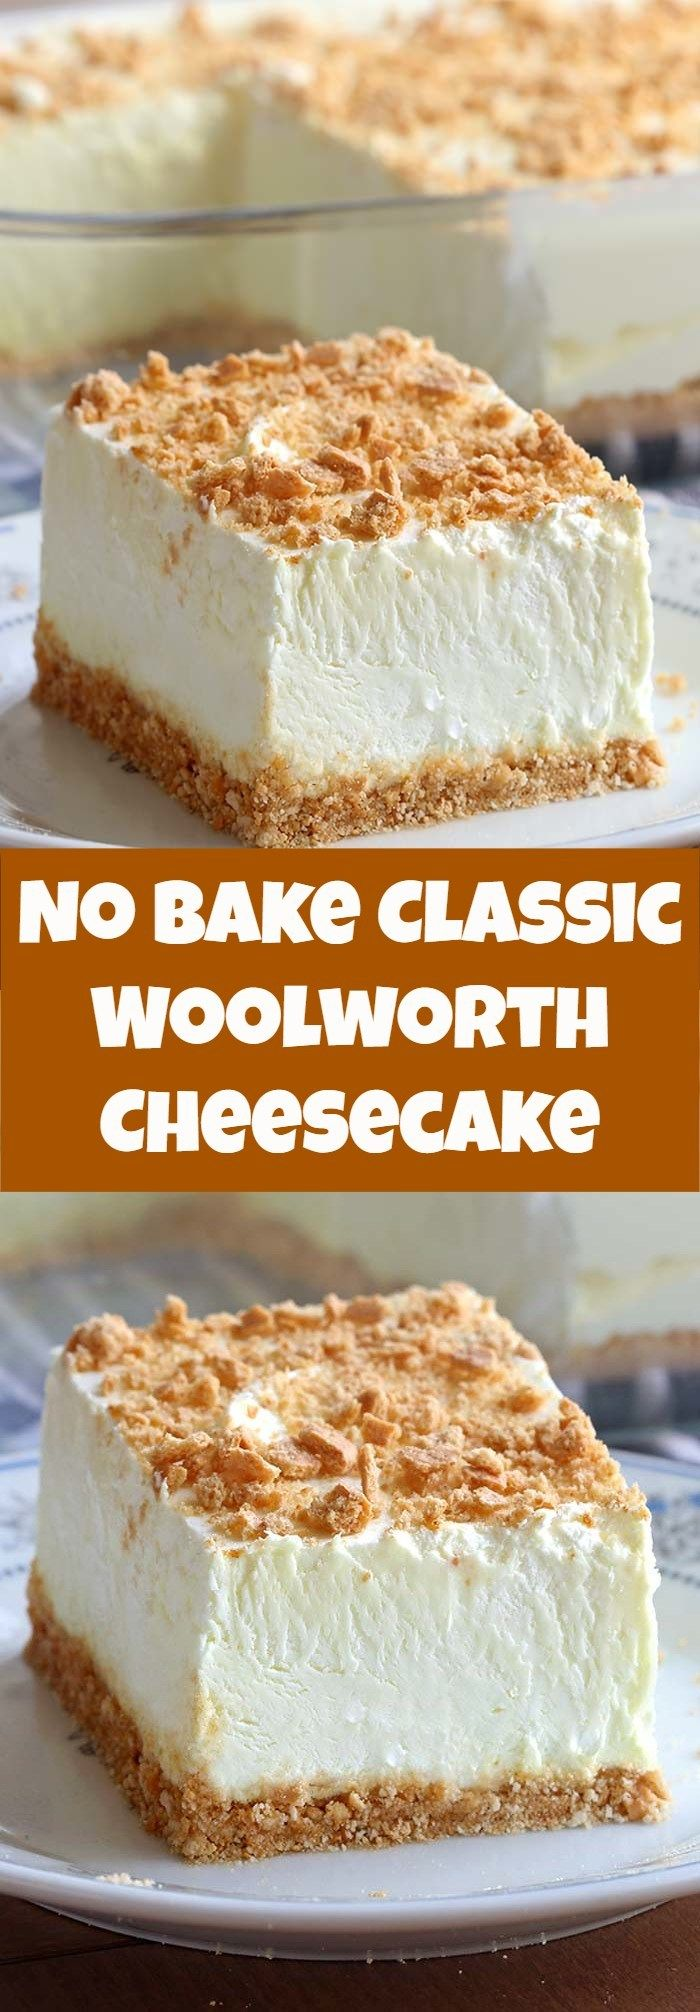 No Bake Classic Woolworth Cheesecake Spatula Fans Cream Cheese Desserts Cake Baking Recipes Cream Cheese Cake Recipes